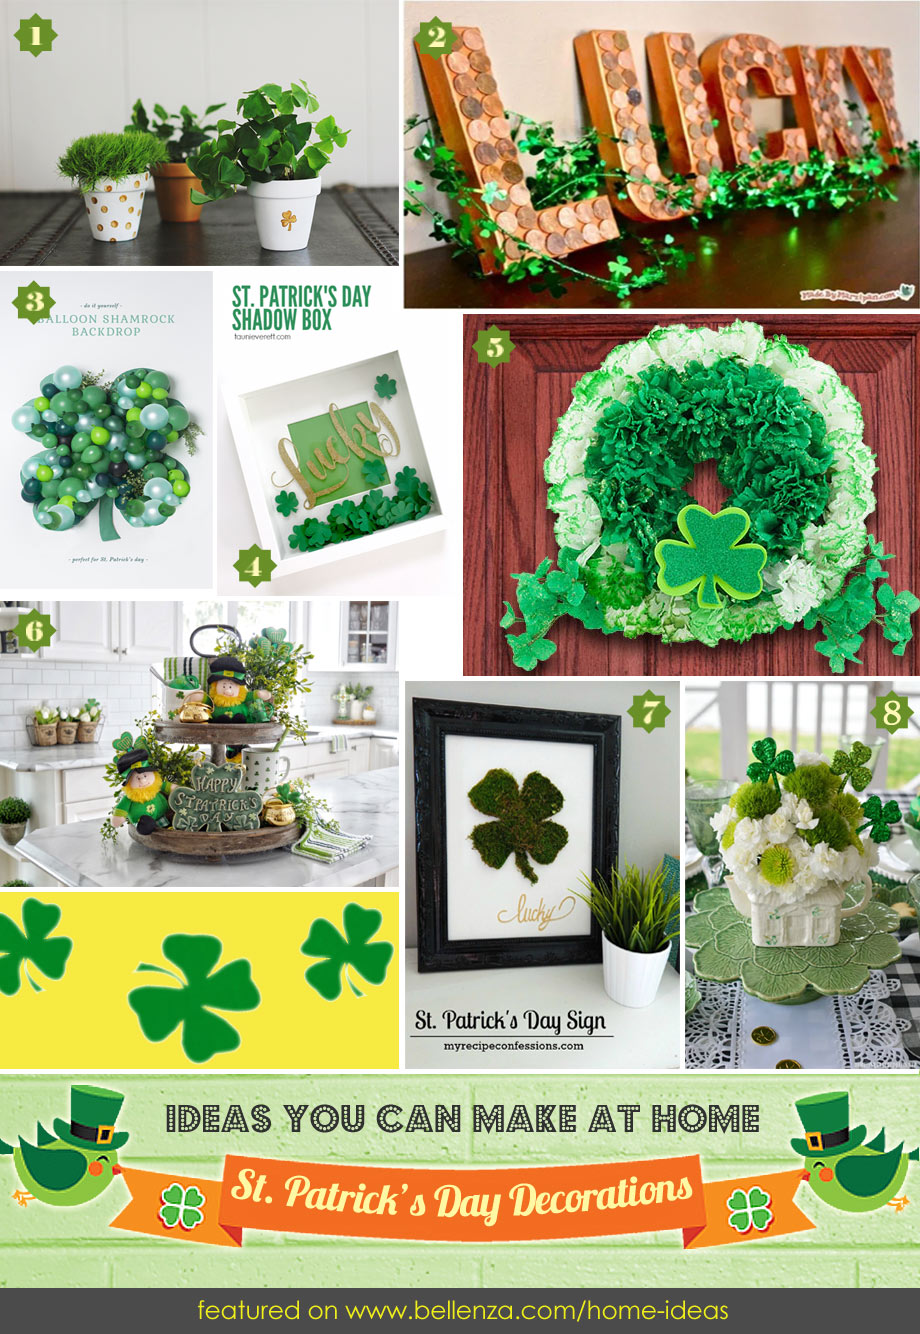 St. Patricks' Day Decorations for the Home